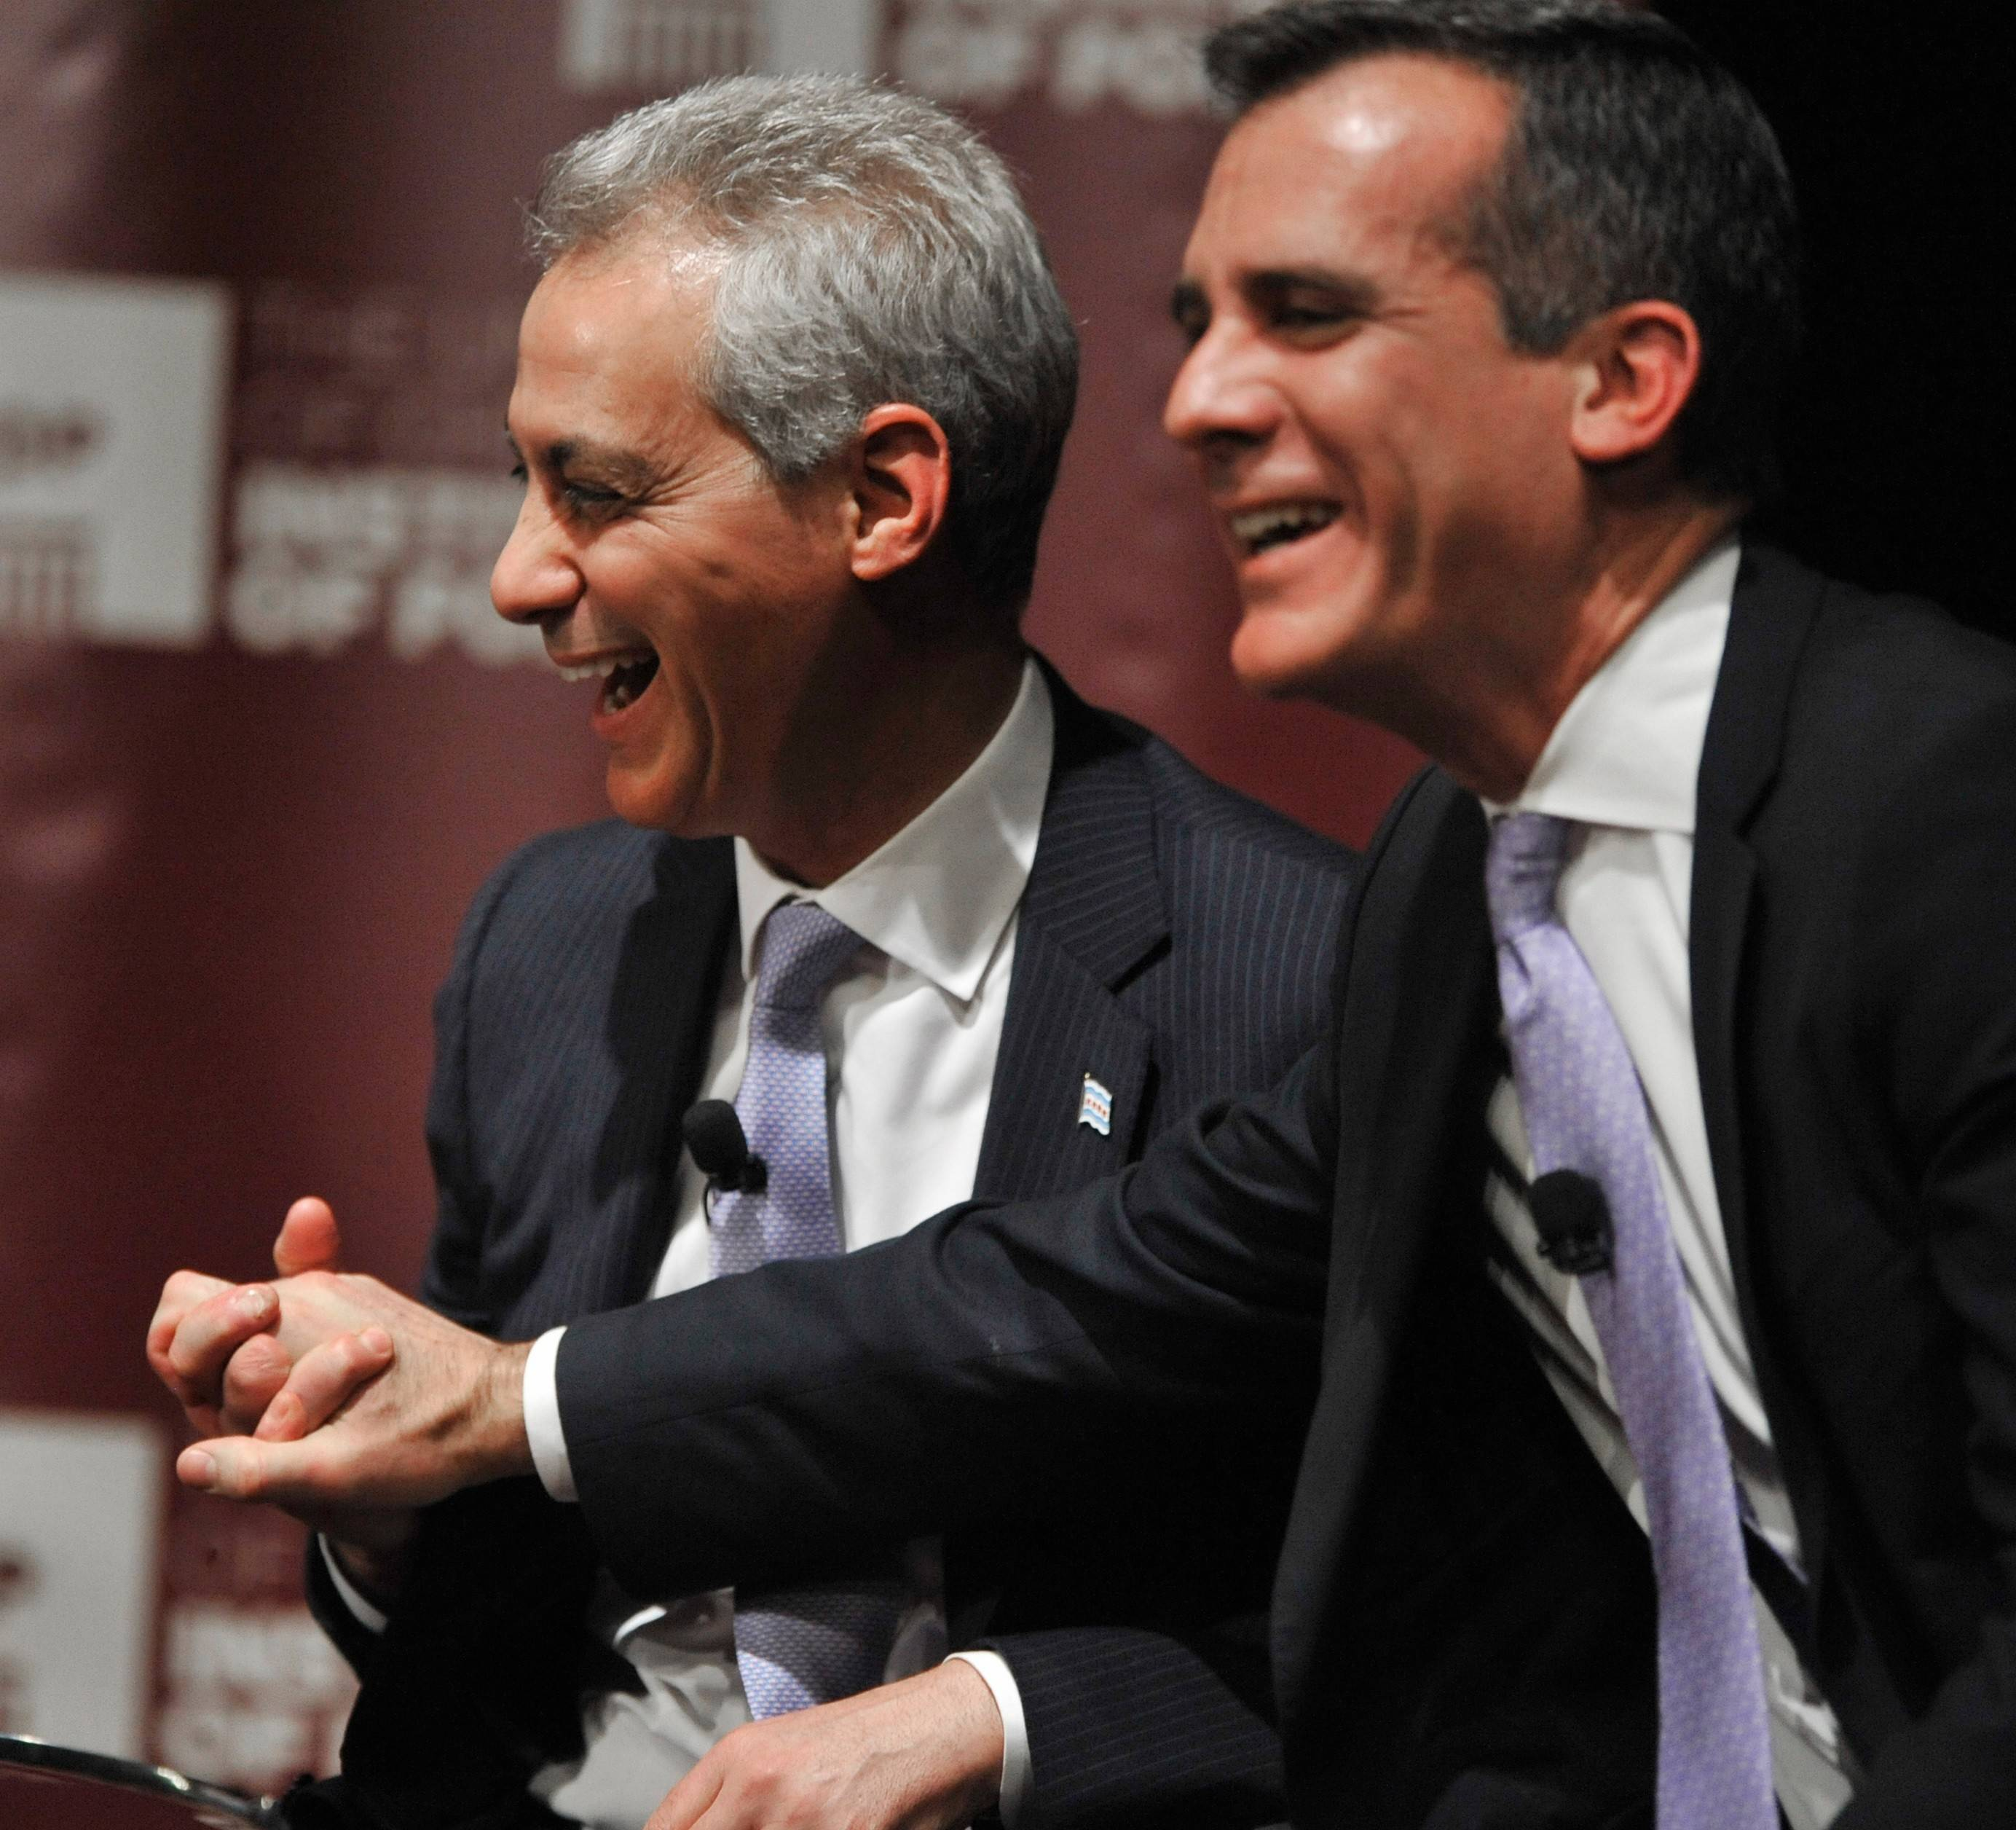 Chicago Mayor Rahm Emanuel, left, jokes with Los Angeles Mayor Eric Garcetti during a March panel discussion about the issues facing the nation's big cities at the University of Chicago. The mayors have a wager on the outcome of the Blackhawks-Kings playoff series.